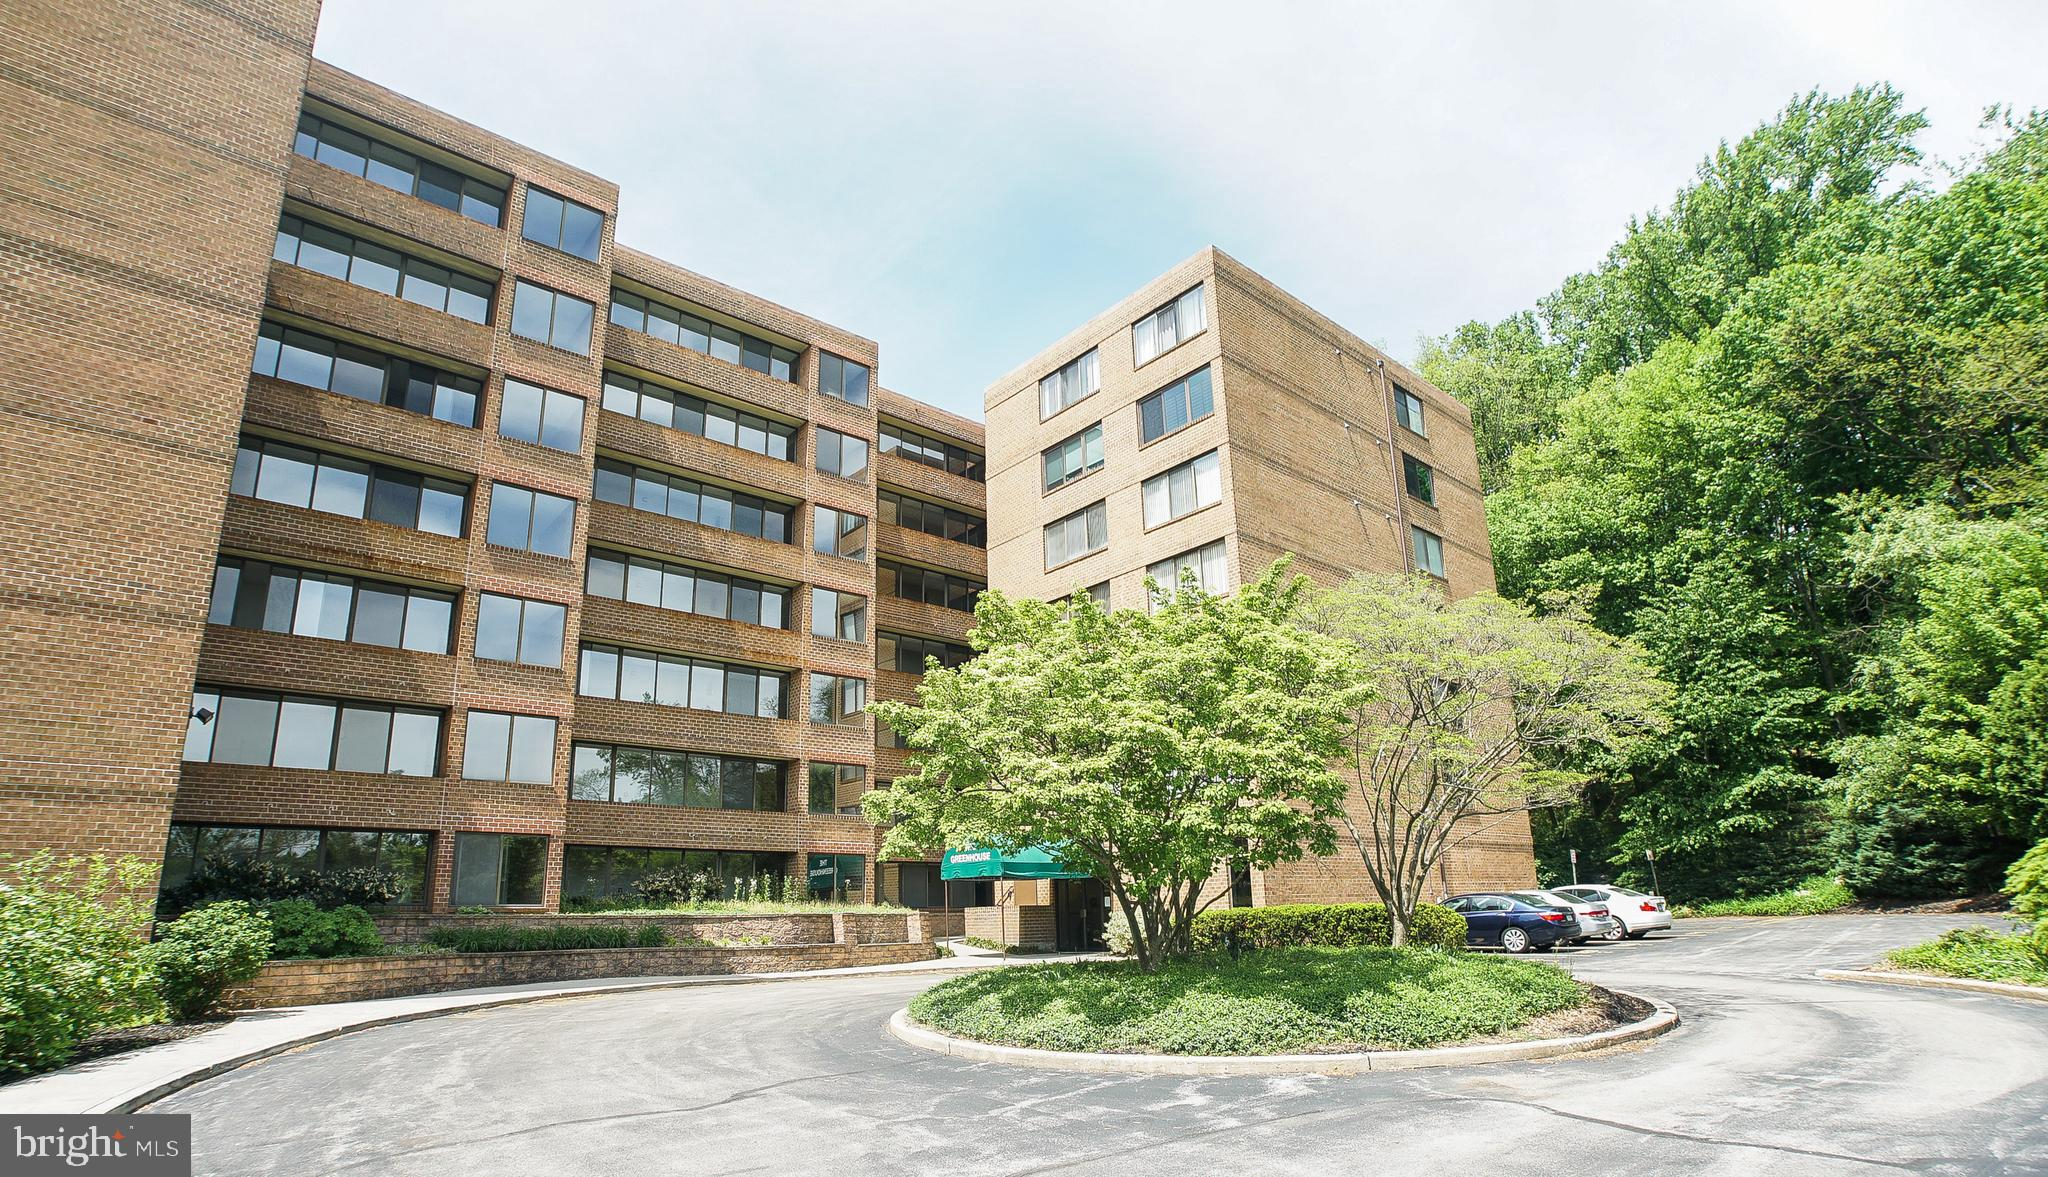 Gorgeous condo located in the popular Greenhouse Condominium Community in Lower Merion School District. This unit is impeccably maintained. It was a 2 bedroom unit but the second bedroom was converted to a spacious master bedroom suite! An added plus, the master bedroom space could be converted back to a two bedroom if so desired! This exceptional and bright home features many amenities including hardwood floors throughout, tiled floors in bathrooms, a gourmet kitchen with granite counter tops, granite center Island, oak cabinetry, tiled backsplash, under and above cabinet lighting and new stainless steel appliances. Across from the kitchen is a living room and dining space, with large windows letting in plenty on natural light. The master suite also contains an updated bathroom, upgraded walk-in closet and a sitting area, and access to a spacious balcony. The hall bath also features a washer/dryer combo.  Location is everything, and this condo is in close proximity to shopping, schools, transportation, restaurants and major highways. An added bonus is assigned parking space, a storage locker in the basement, a pool, and an elevator for your convenience. This won't last long, schedule your tour today!